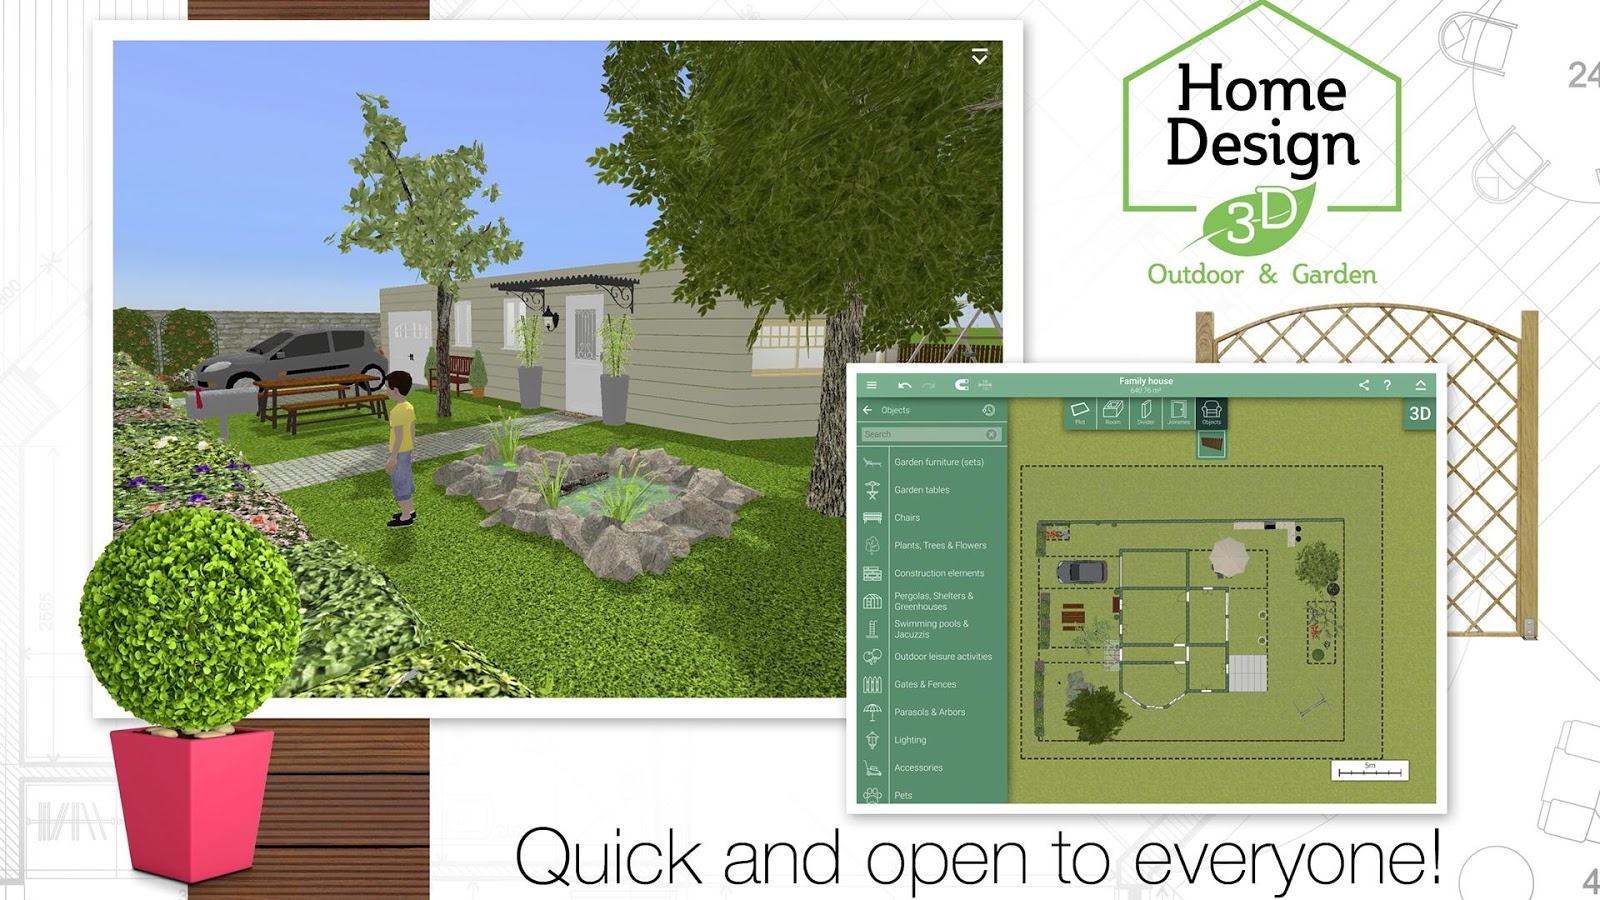 Home design 3d outdoor garden android apps on google play for Home design online free